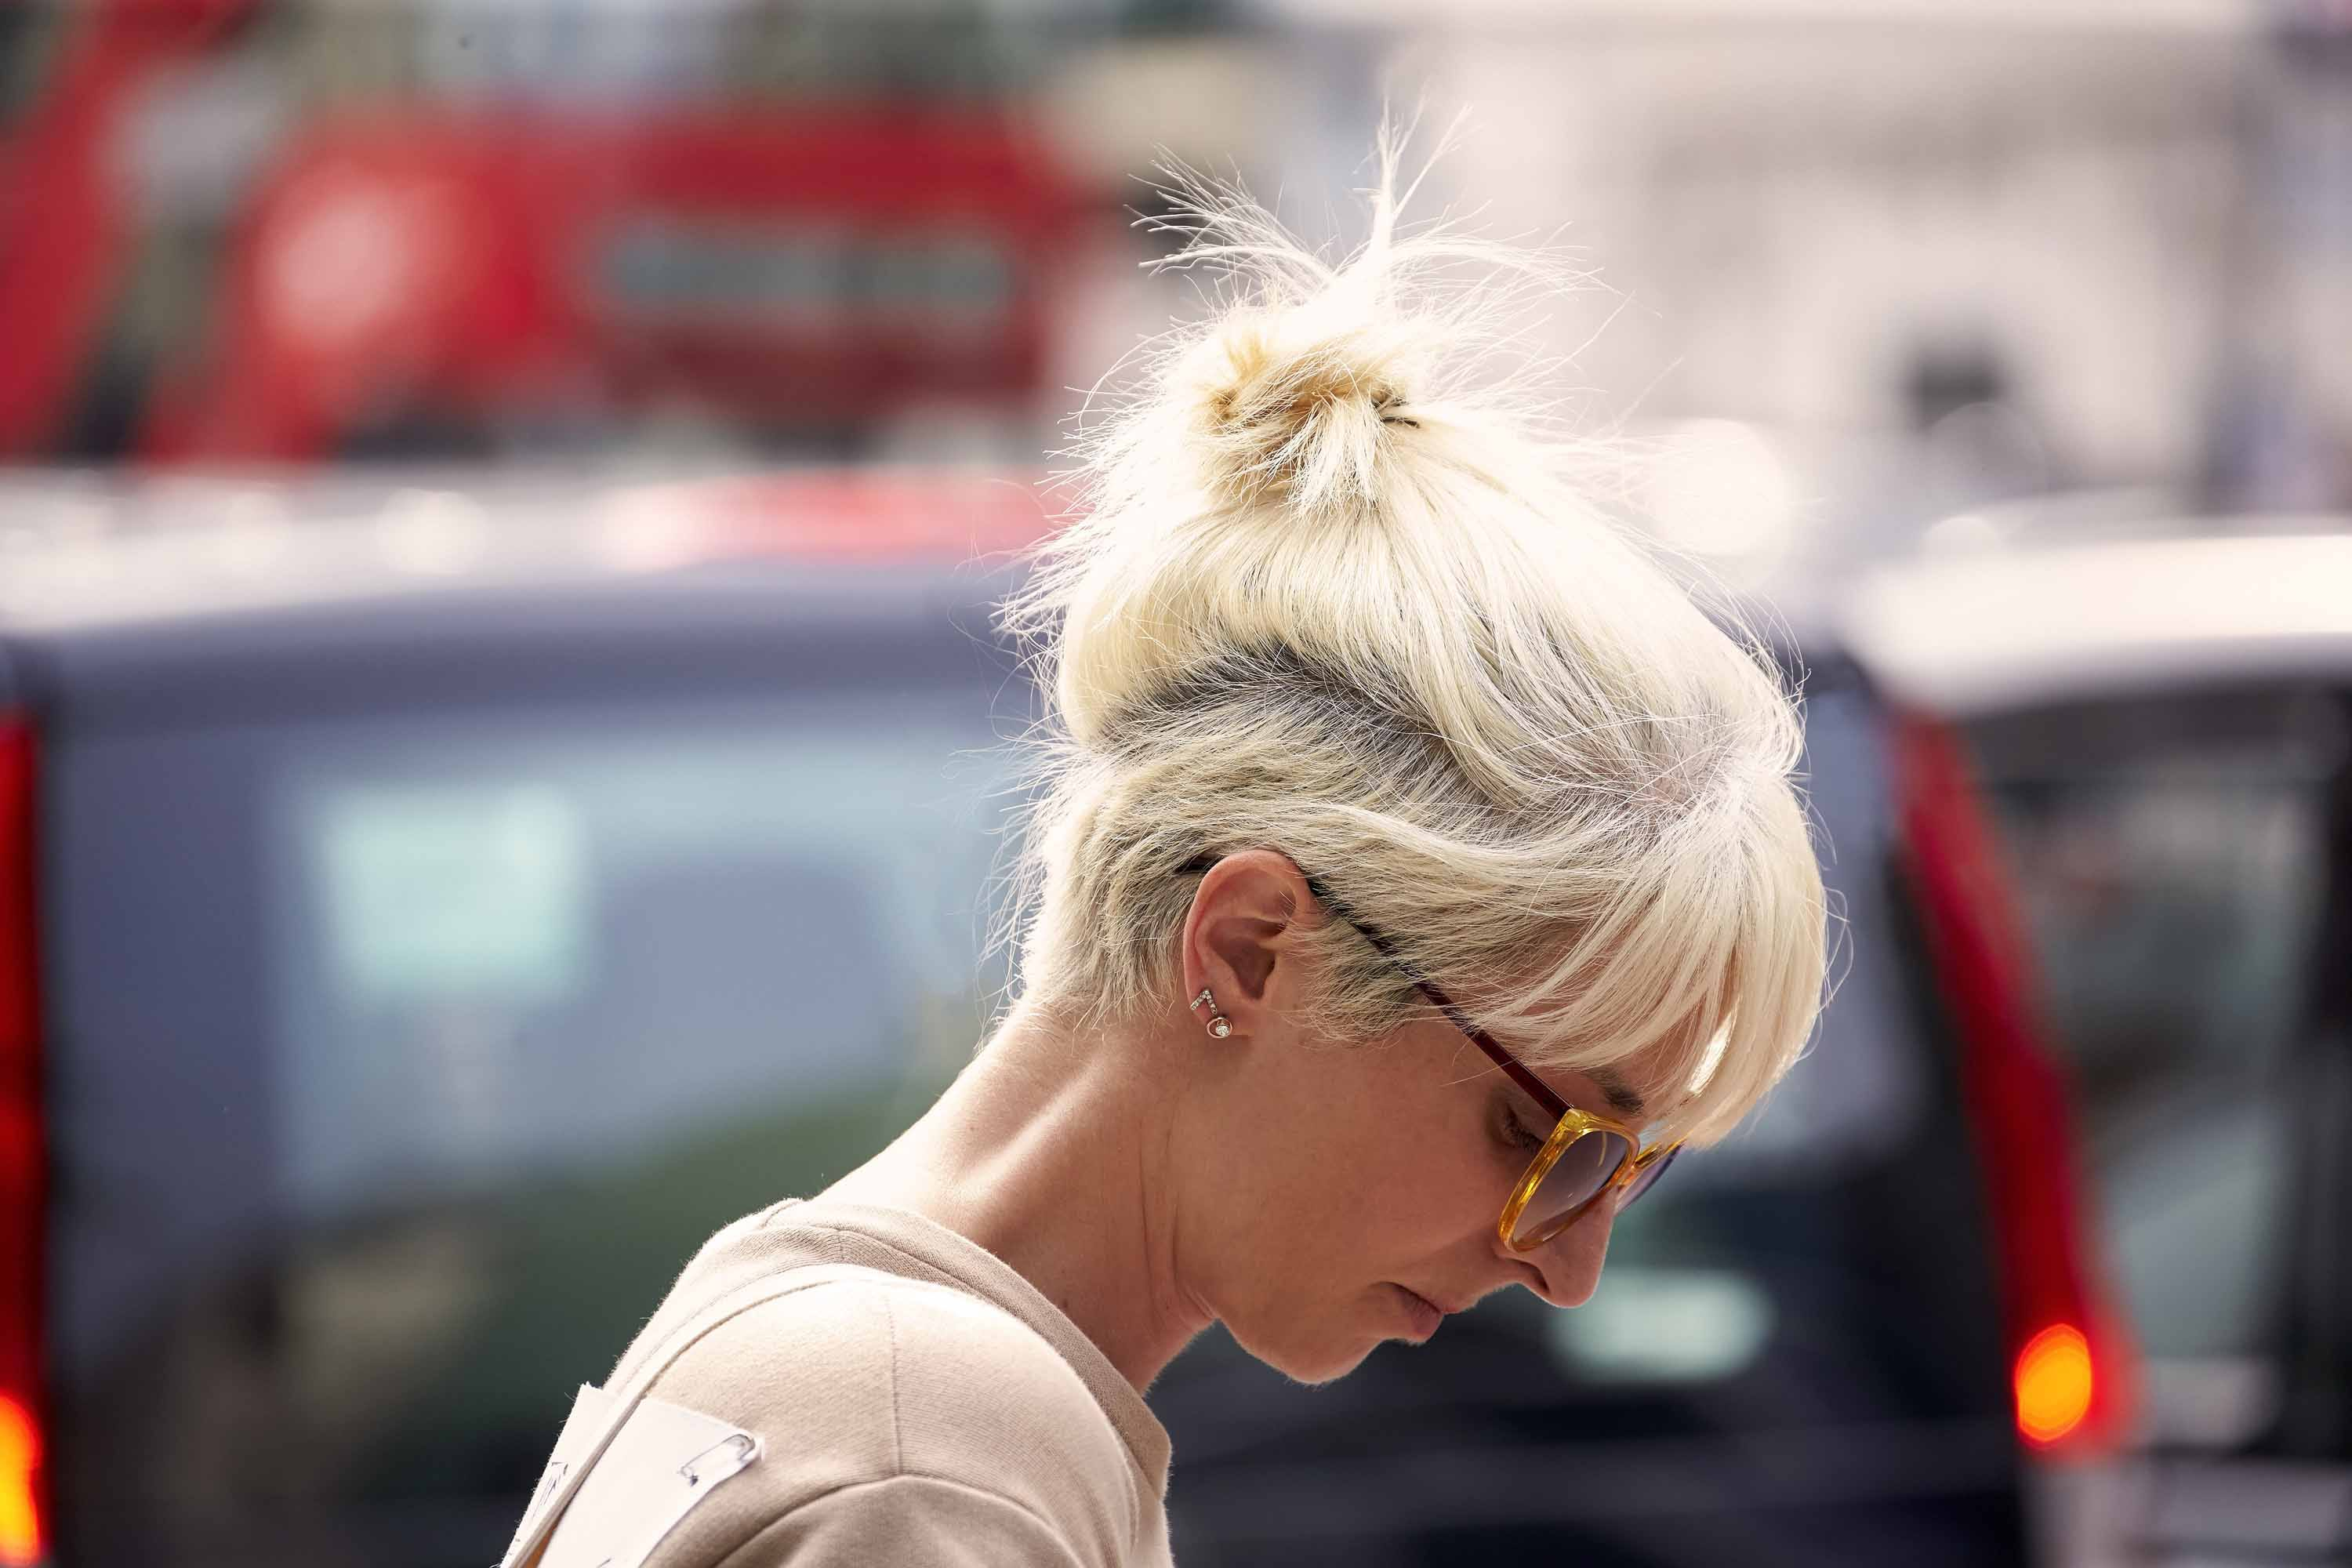 white blonde hair pony undercut